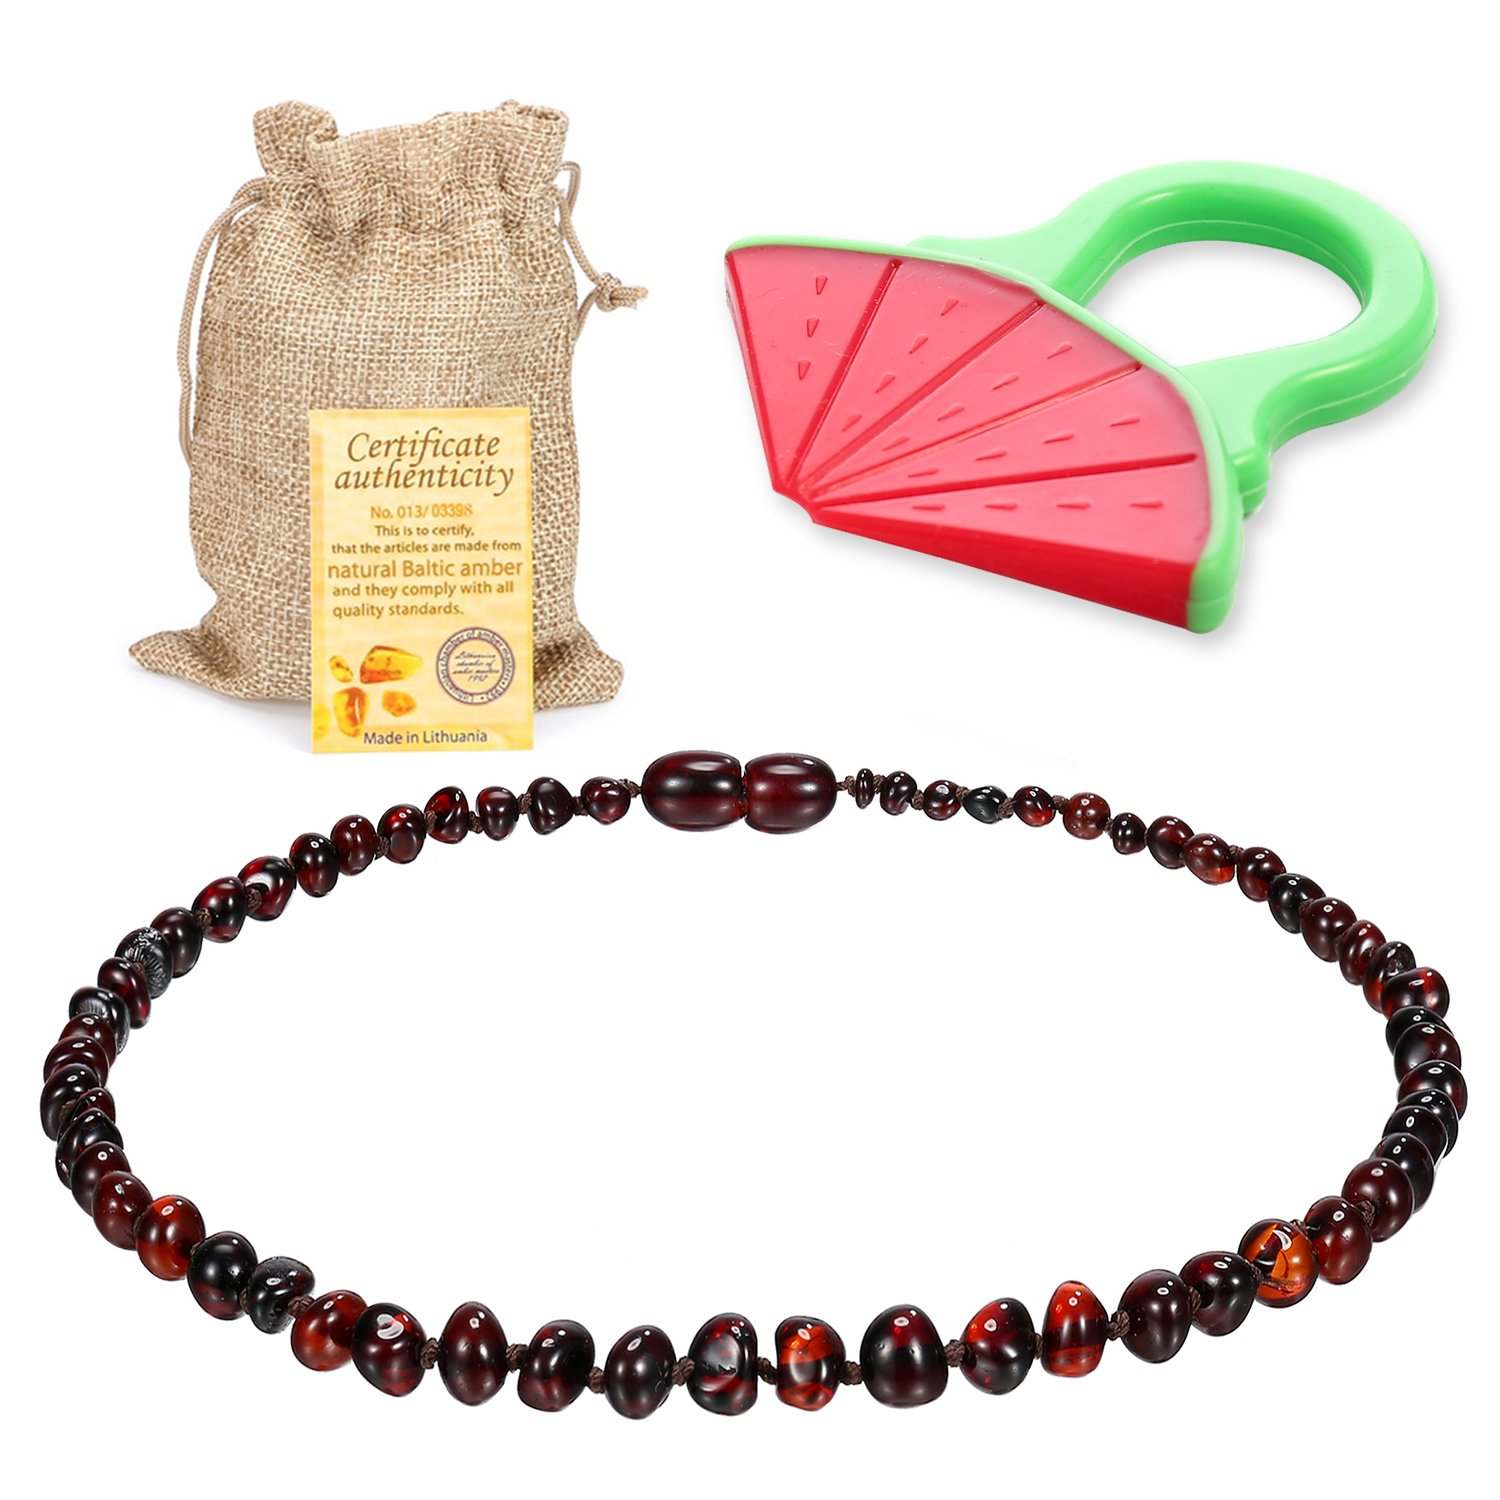 Raw Baltic Amber Teething Necklace for Babies - (Honey) Anti-Flammatory, Drooling & Teething Pain Reduce Properties & Natural Certificated Oval Baltic Jewelry for Christmas¡ Sweetie House